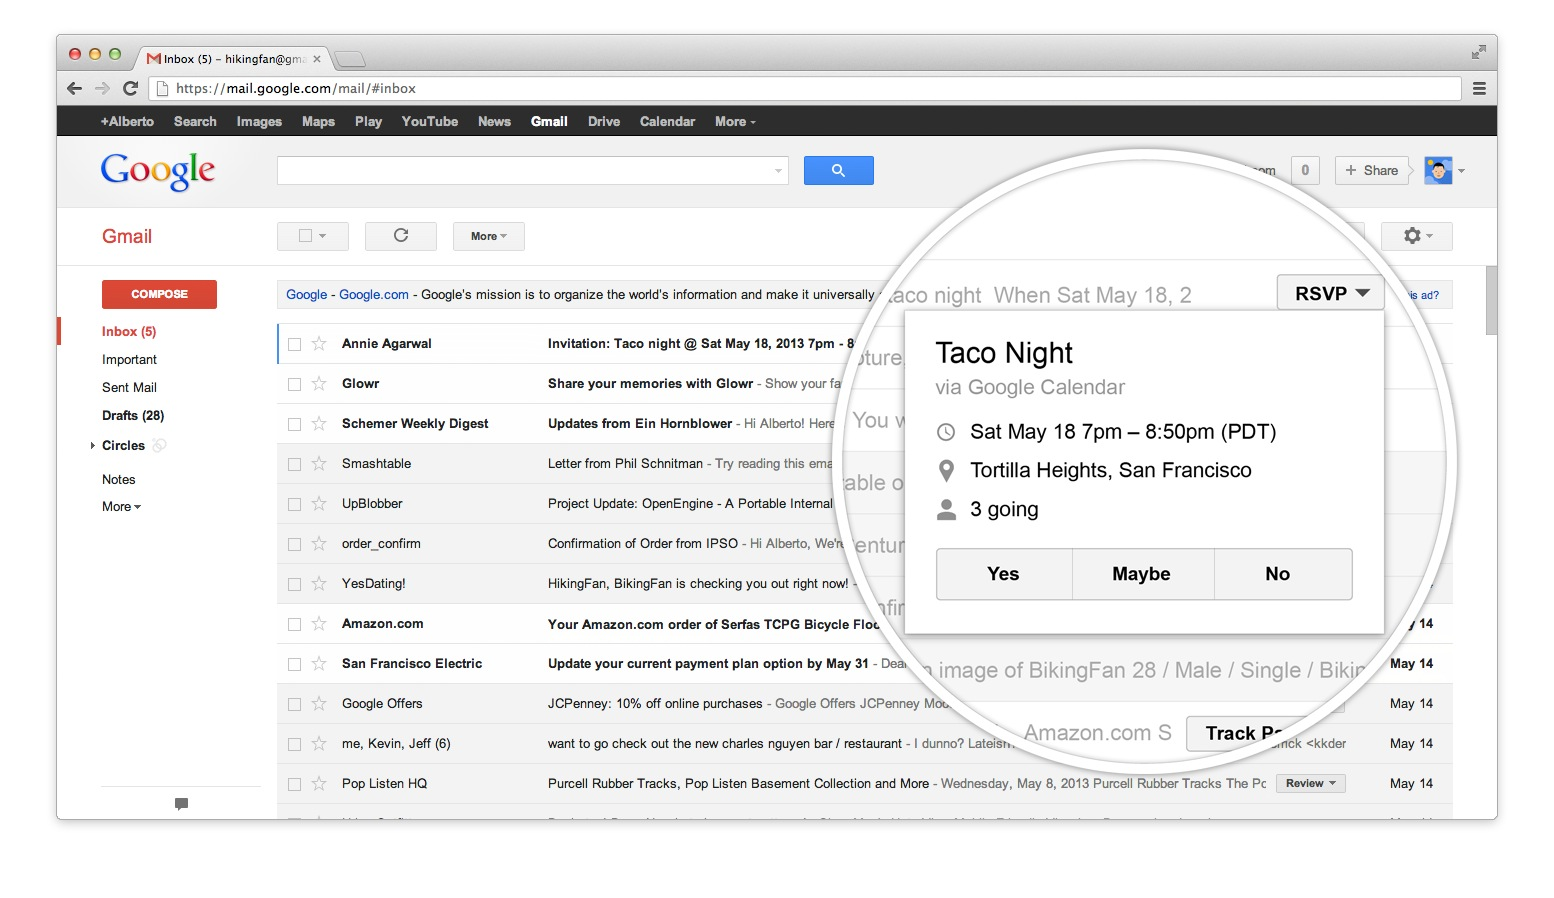 topic google mail gpfe